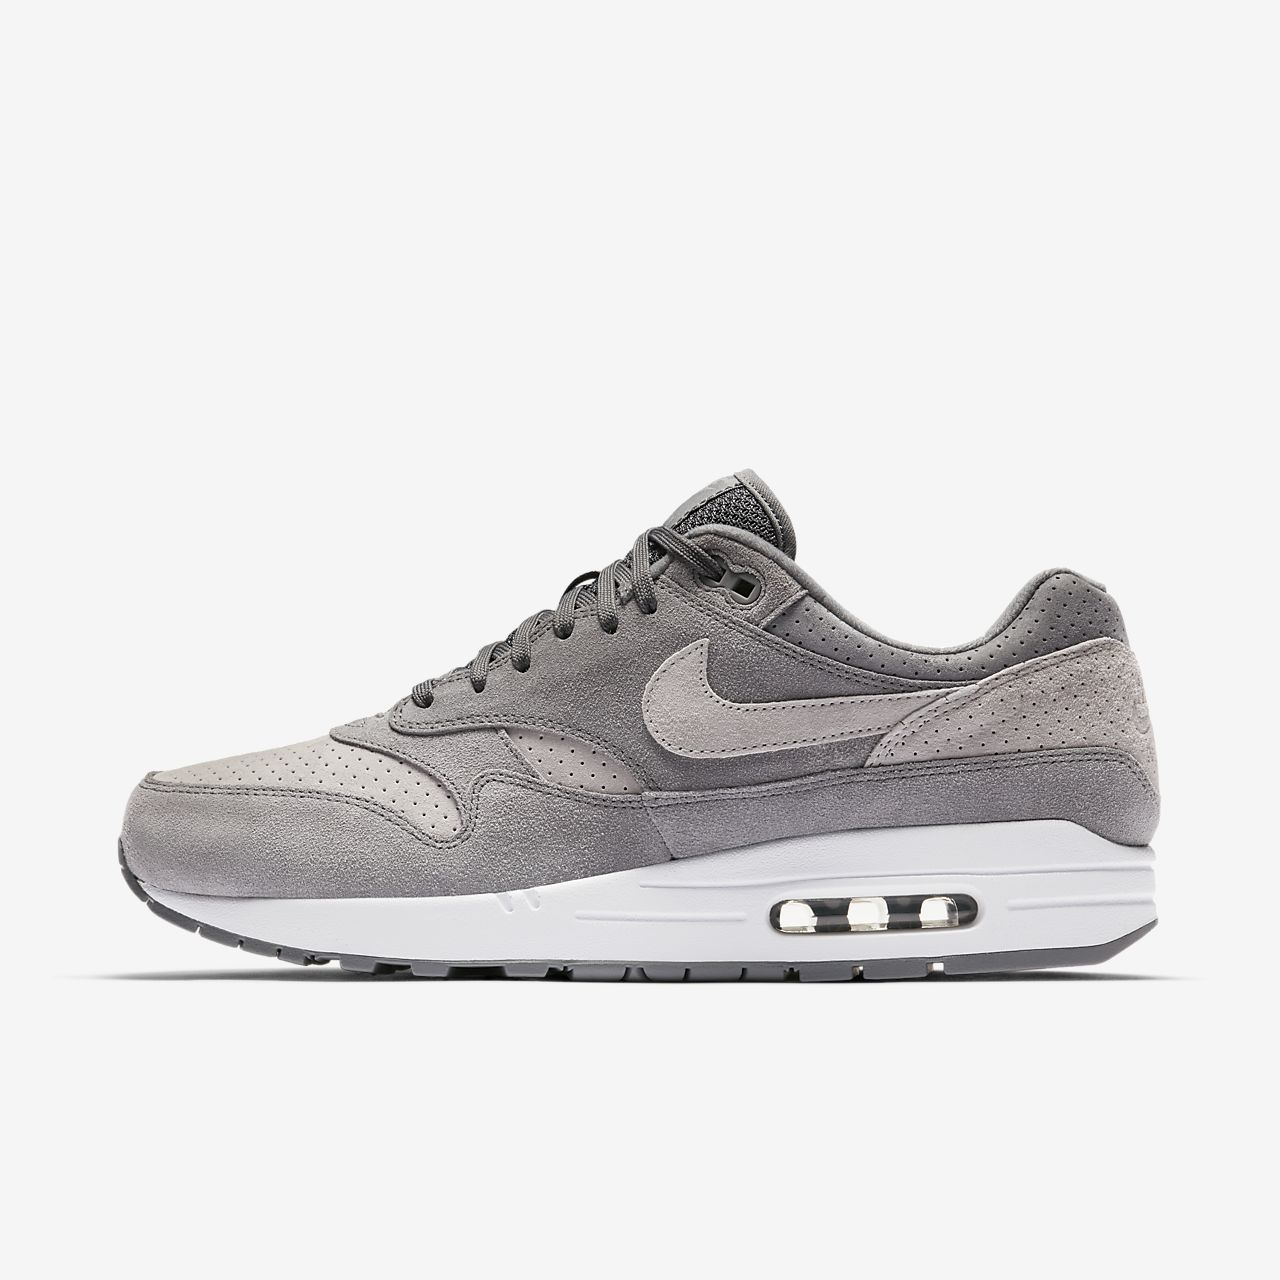 ... Nike Air Max 1 Premium Men's Shoe